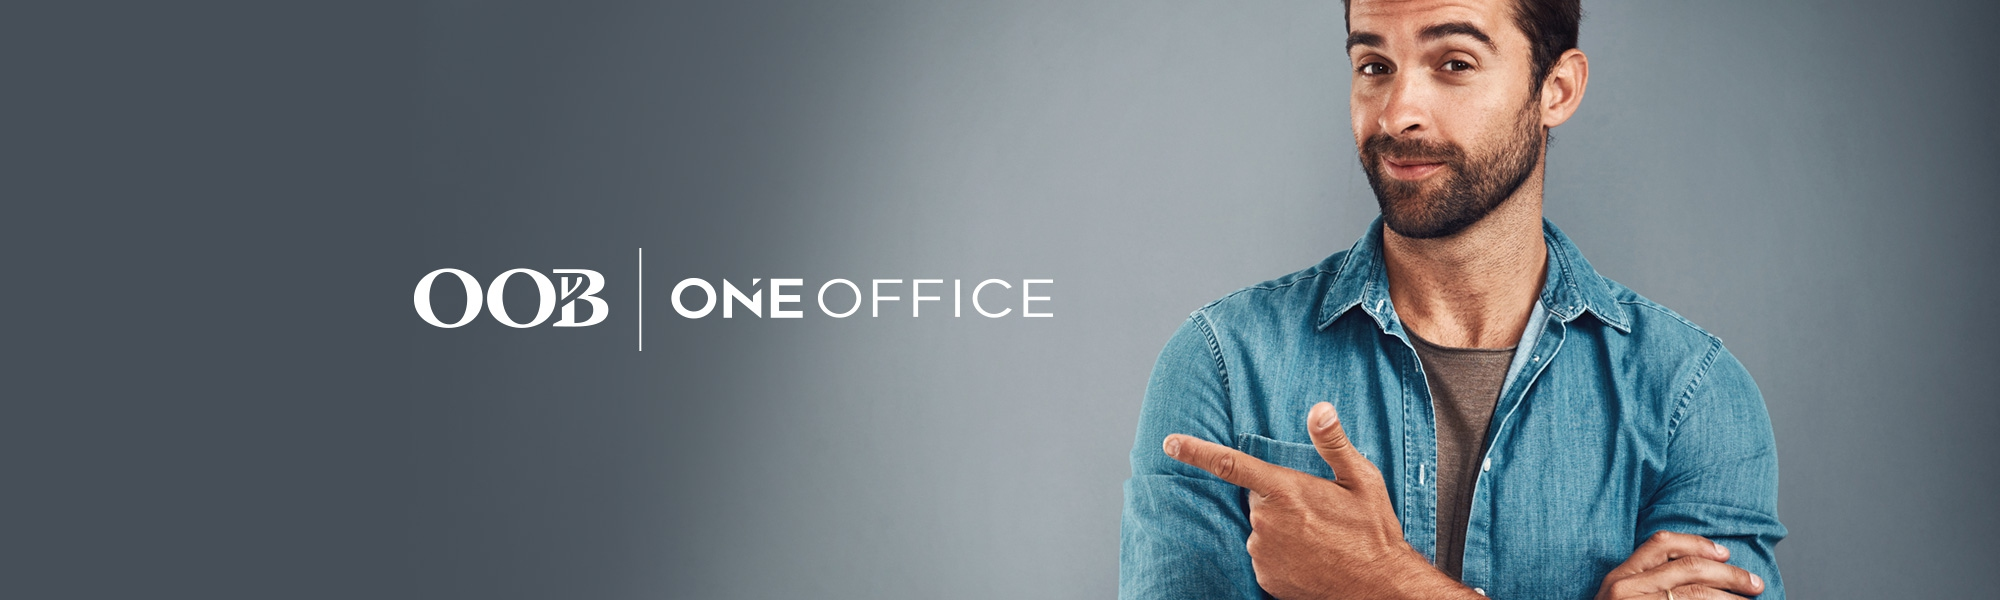 OOvB - One Office